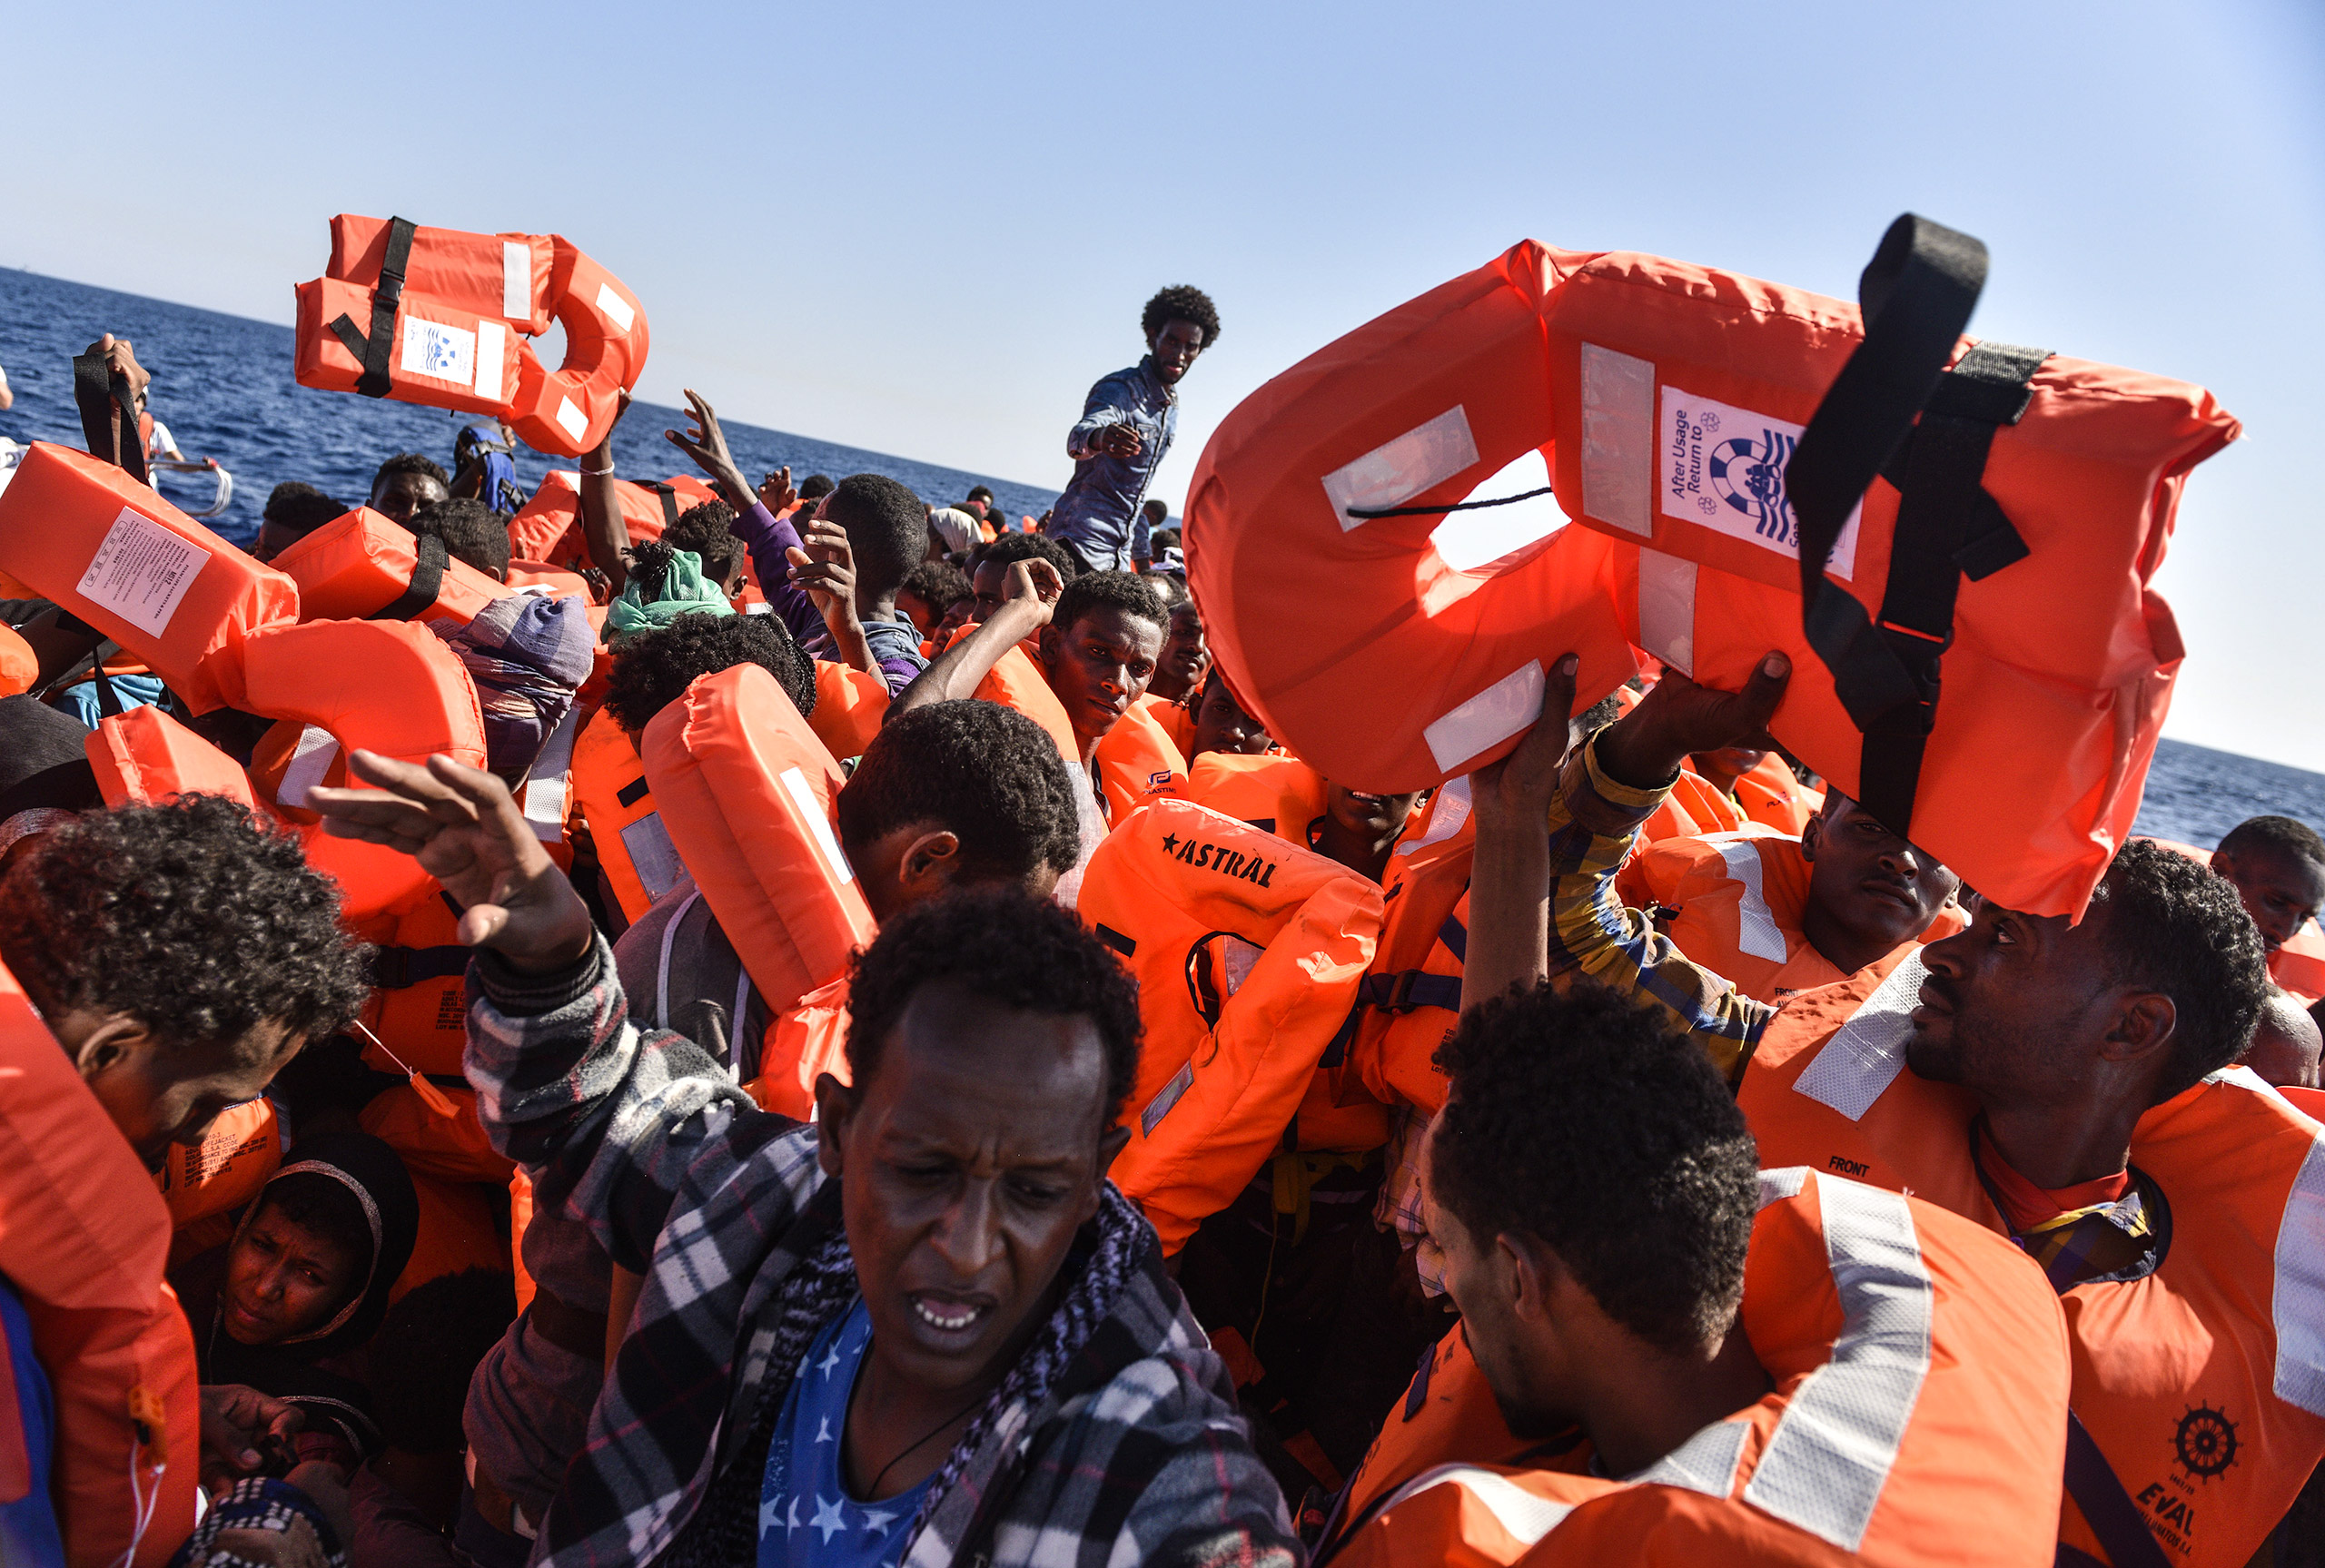 Migrants pass the life jackets being handed out by the search-and-rescue teams with Médecins Sans Frontières and SOS Méditerranée off the coast of Libya, Aug. 21, 2016.From  Migrants' Last Hope: A Rescue on the Mediterranean Sea